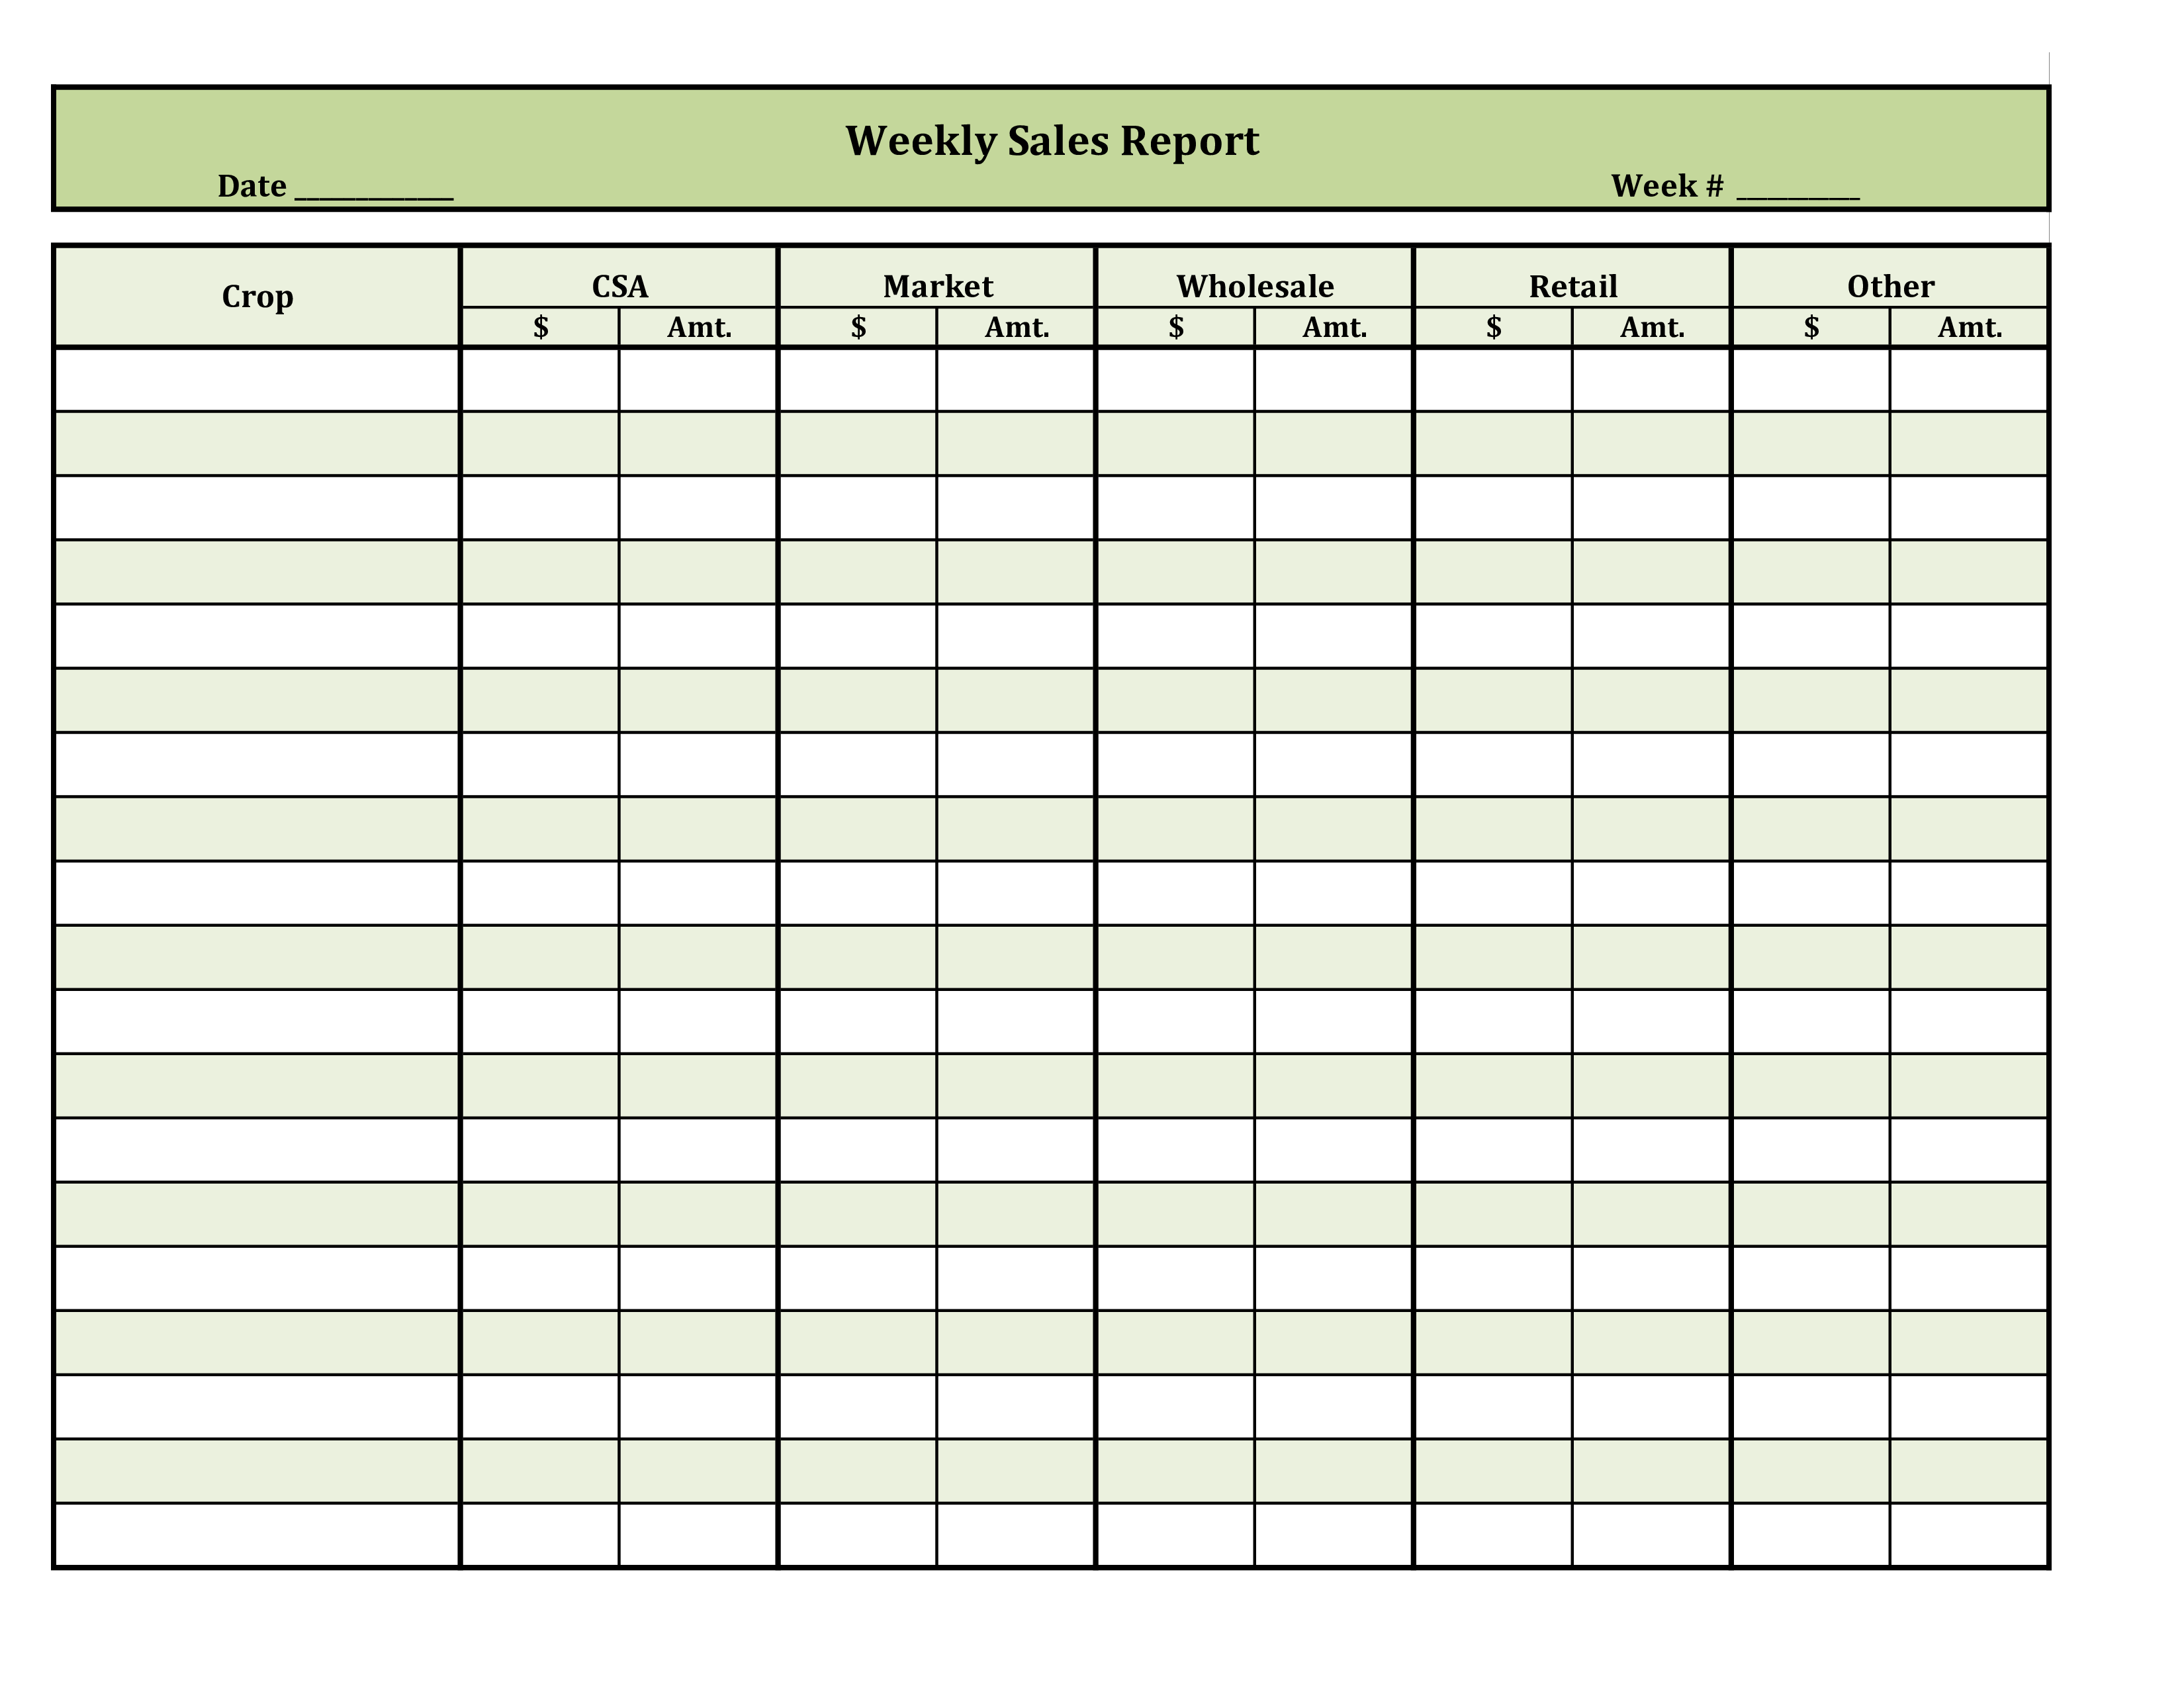 Free Weekly Retail Sales Report Templates At Allbusinesstemplates Com